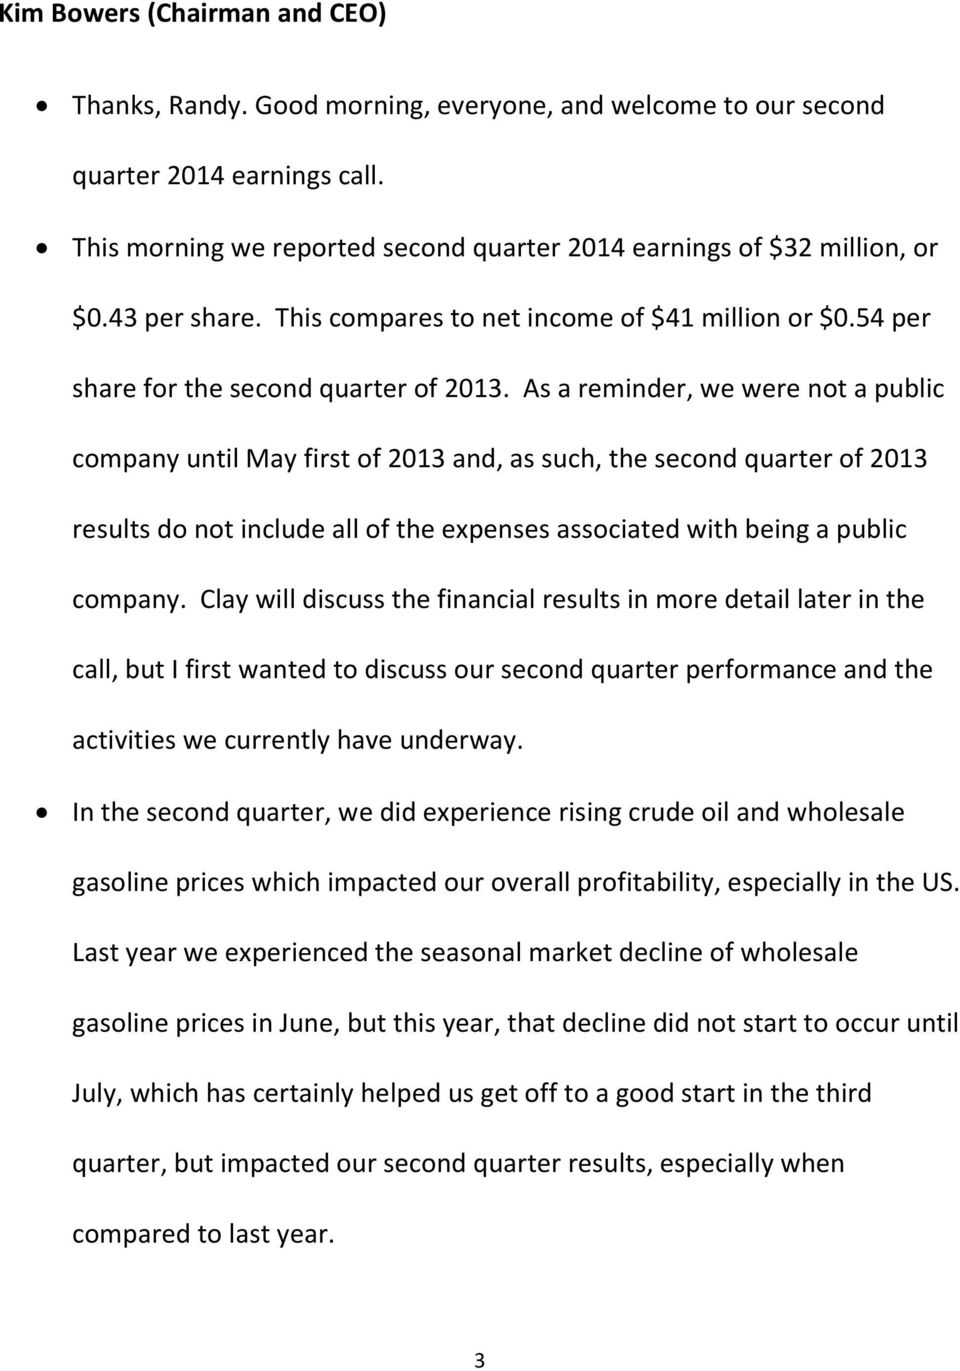 As a reminder, we were not a public company until May first of 2013 and, as such, the second quarter of 2013 results do not include all of the expenses associated with being a public company.